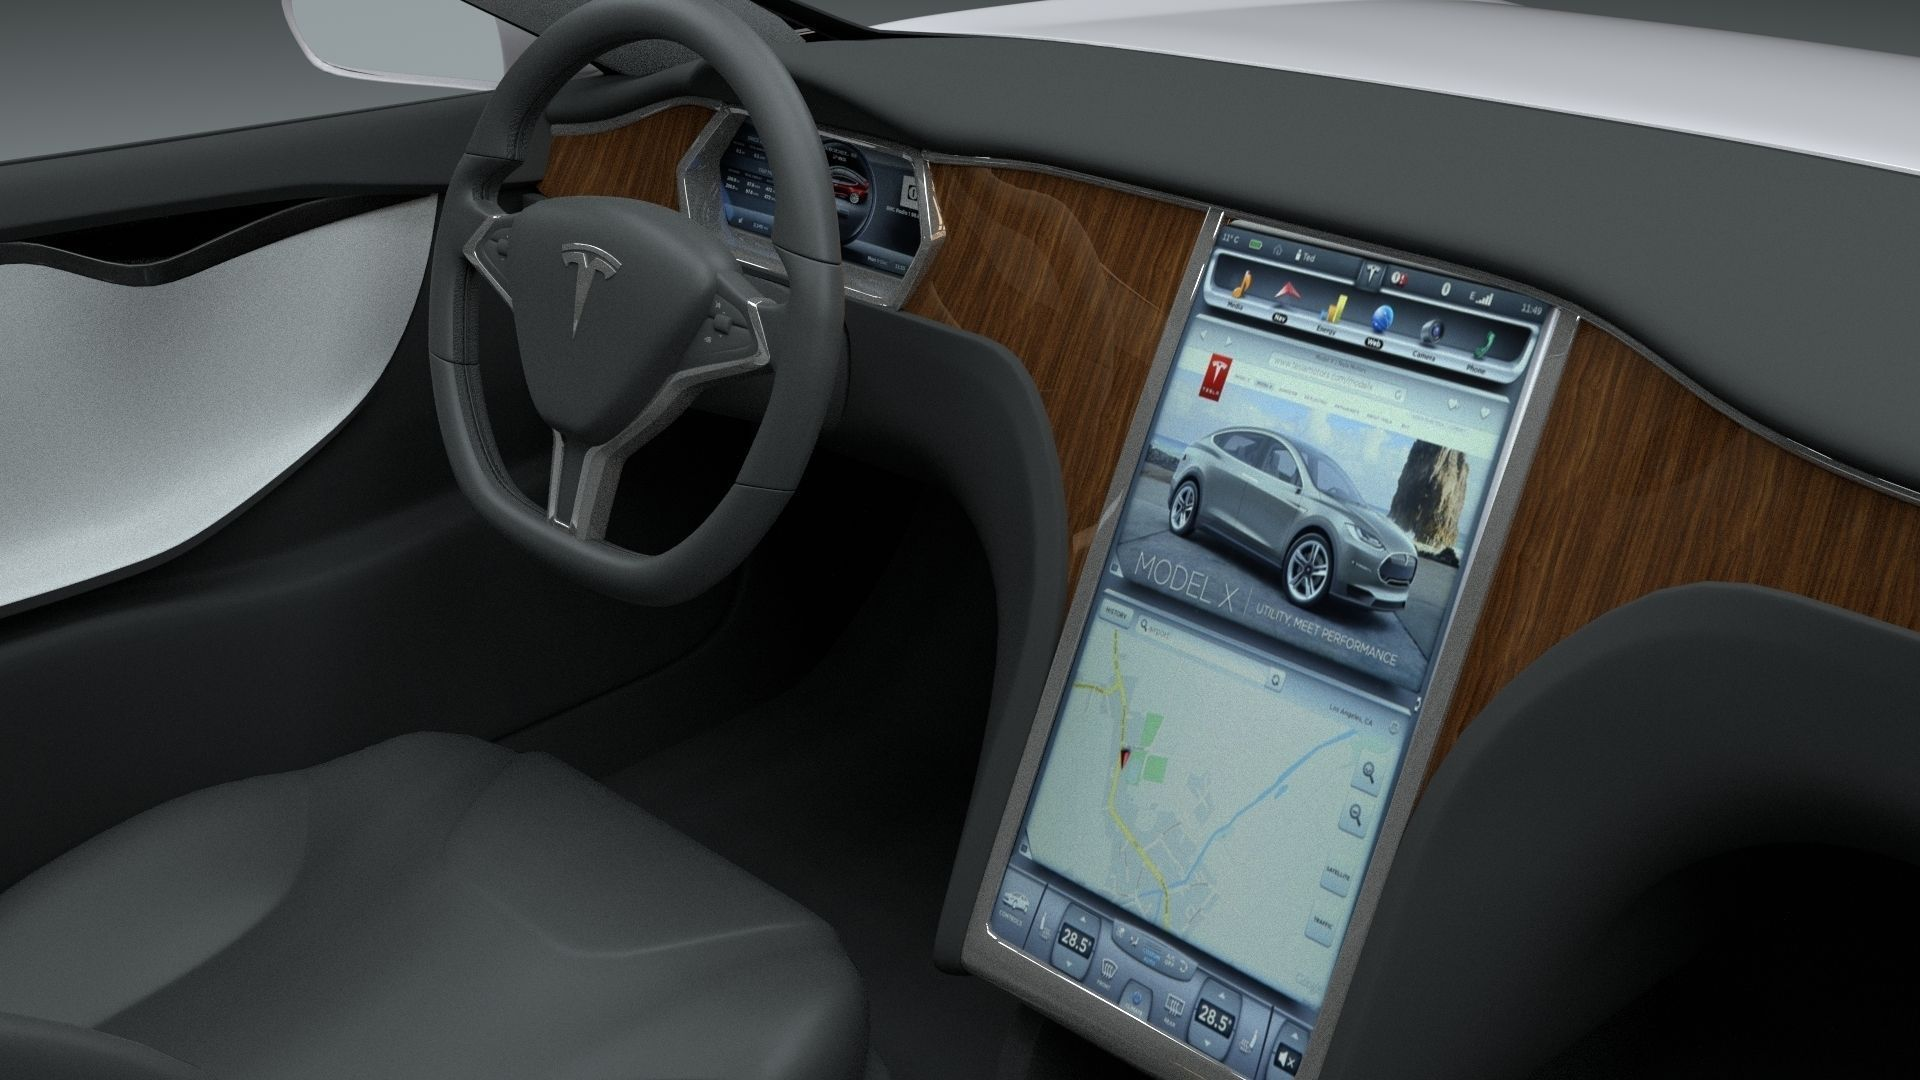 tesla model s with chassis and interior 3d model obj fbx stl blend dae. Black Bedroom Furniture Sets. Home Design Ideas